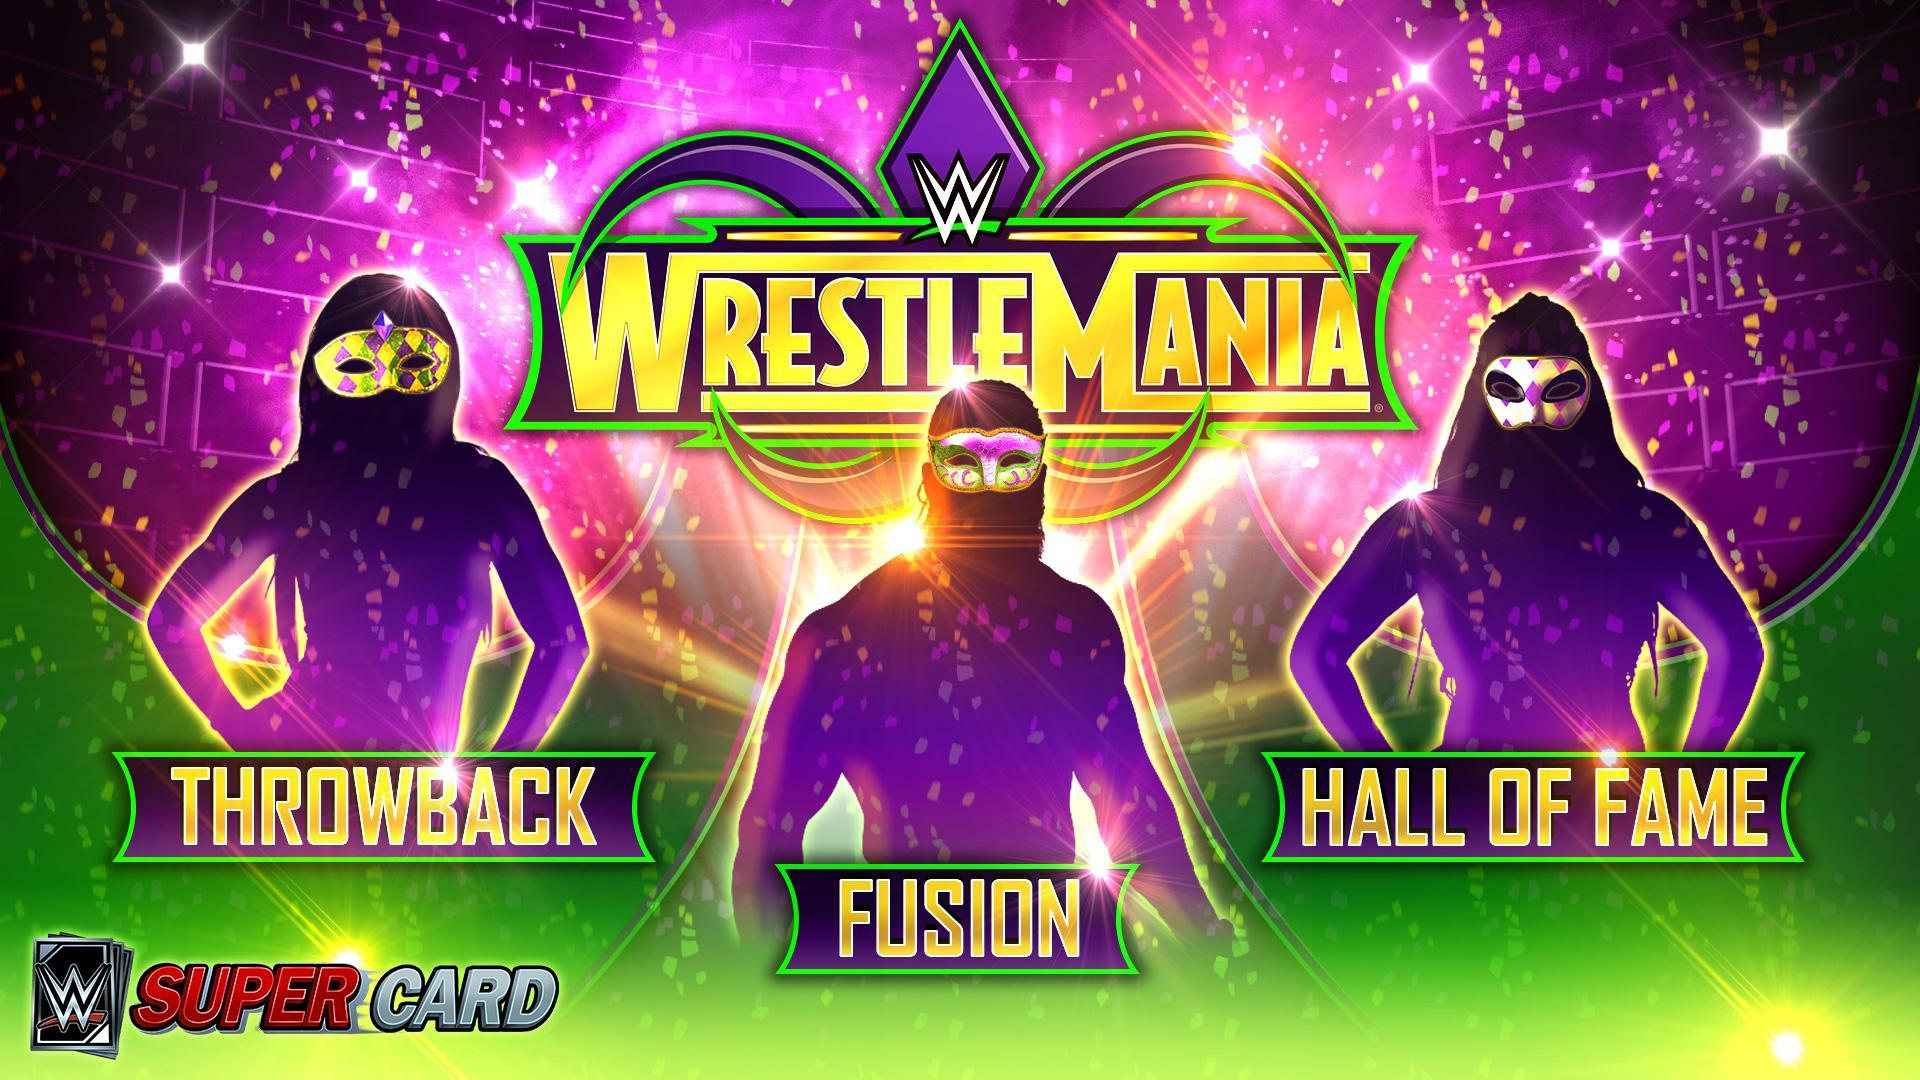 WWE SuperCard: WrestleMania 34 Tier expanded with New Throwback, Fusion & Hall of Fame Cards!